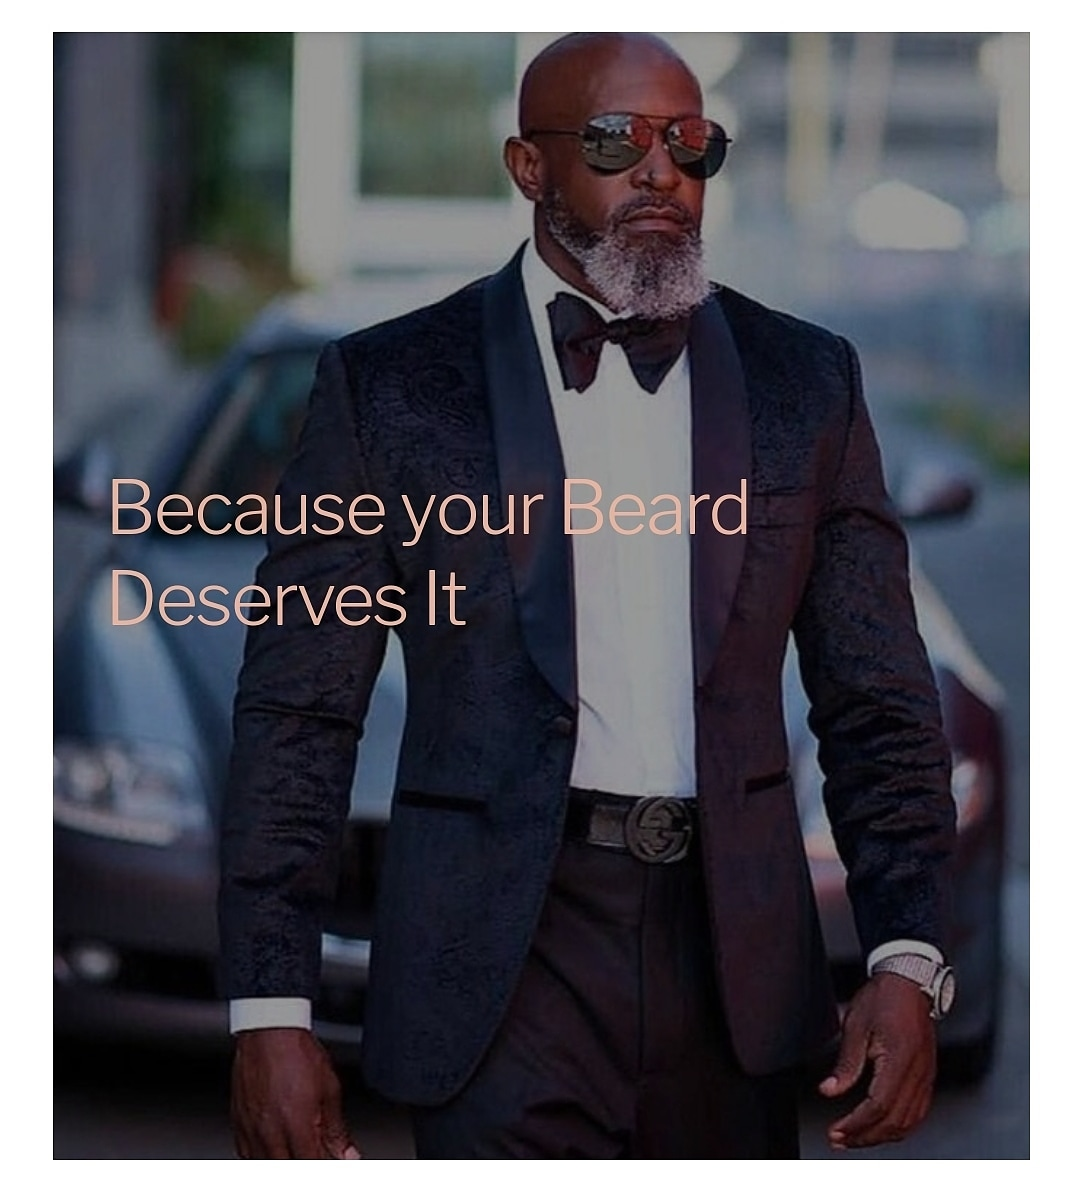 Check out my store! New items in stock! Click here http://www.themensline.shop   #ItsAMovement  #TheMensLine #Beards #BeardStyles #Beard #Men #BeardLine #Barbers #BarberShop #Son #BeardCare #BeardCareProducts #Grandpa #BeardCareTips #BeardGang #Dads #Brother #BeardGamepic.twitter.com/qg8oRp4fzk